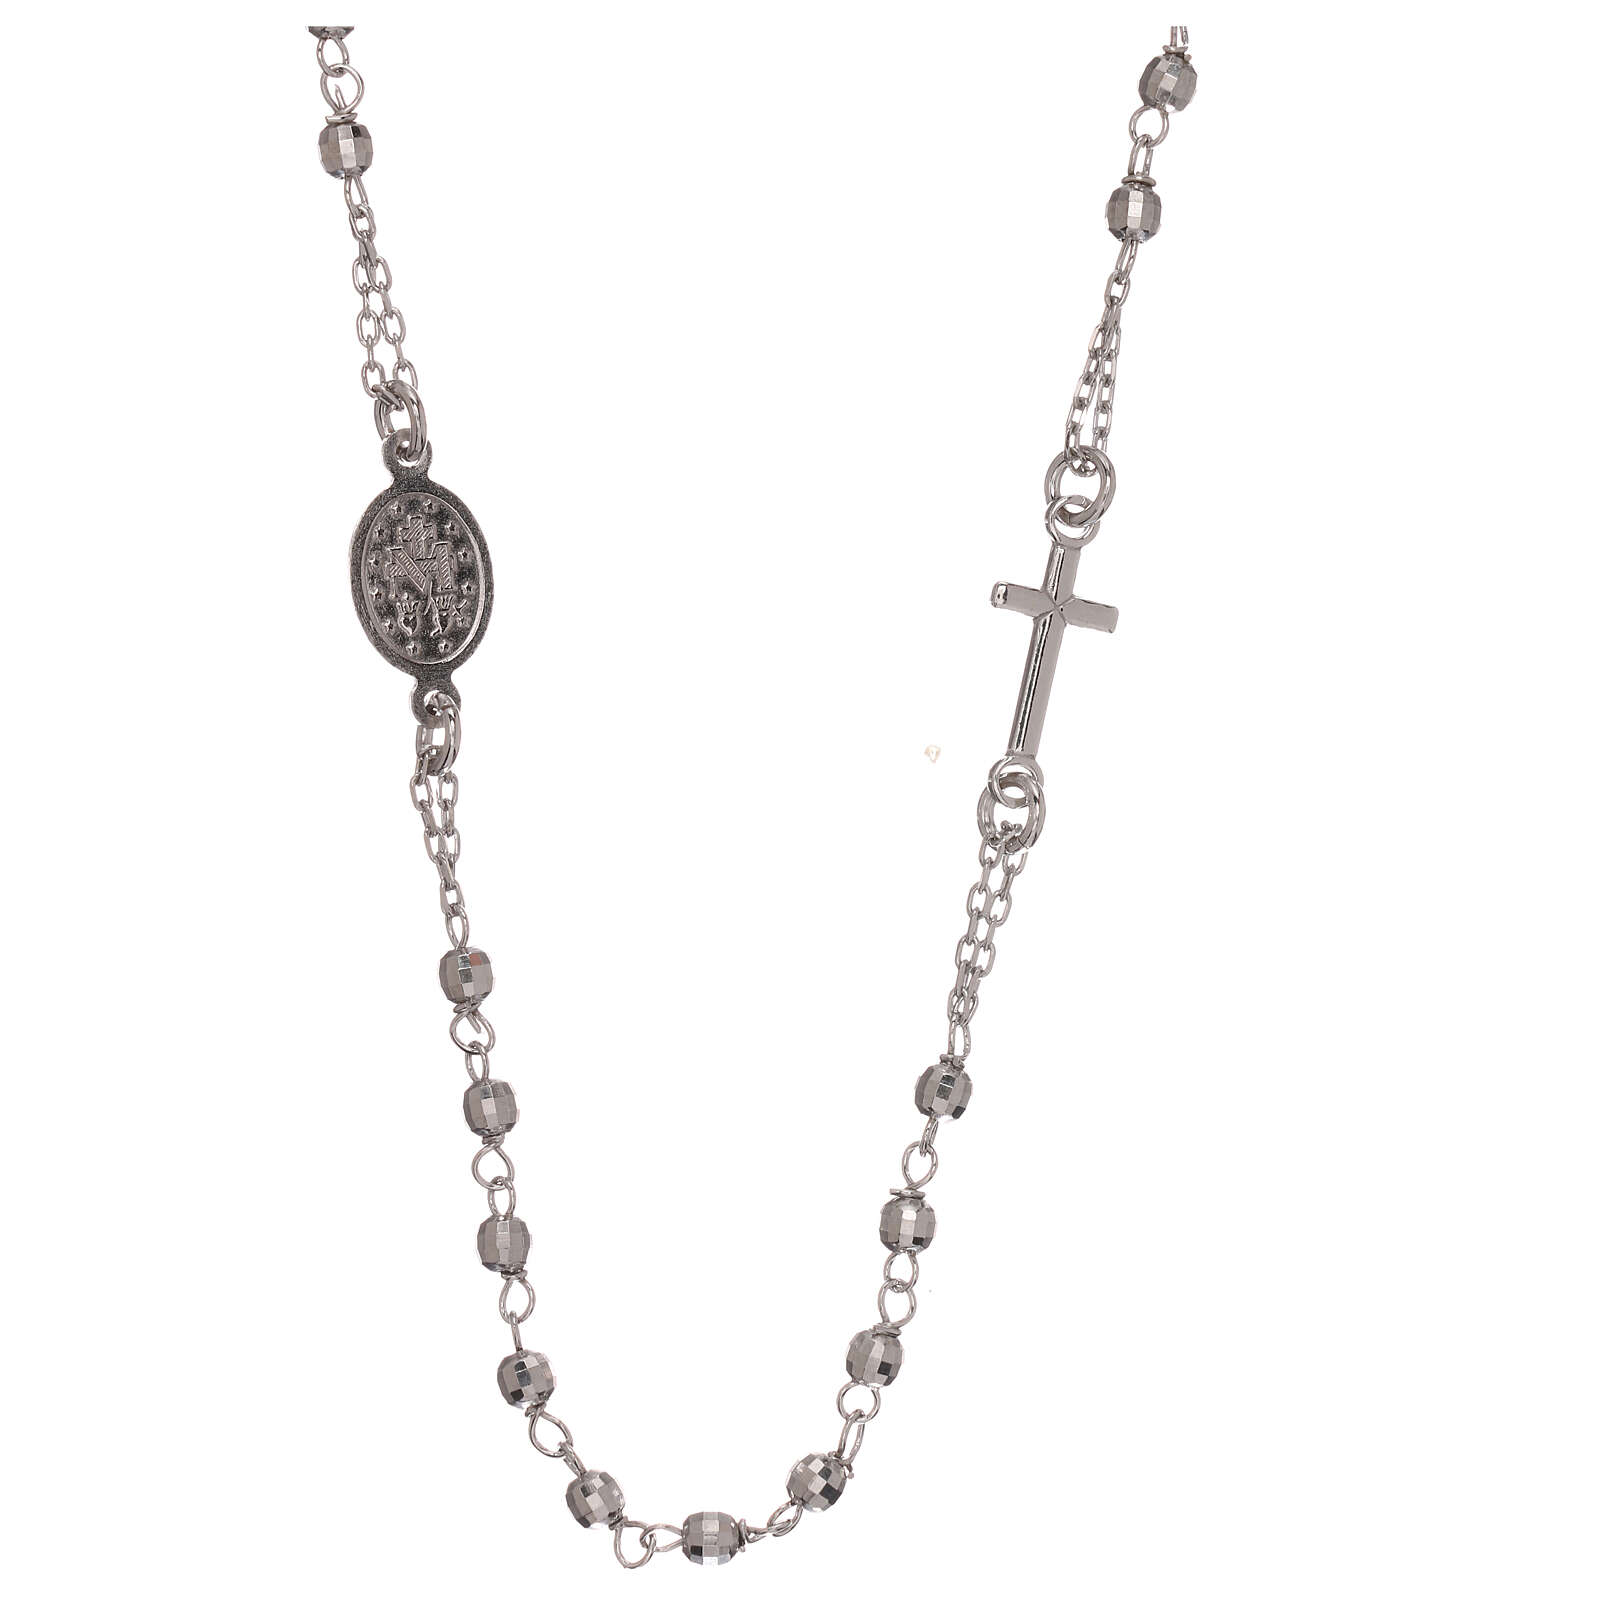 Rosary necklace 925 silver Miraculous Medal beads 1 mm 4